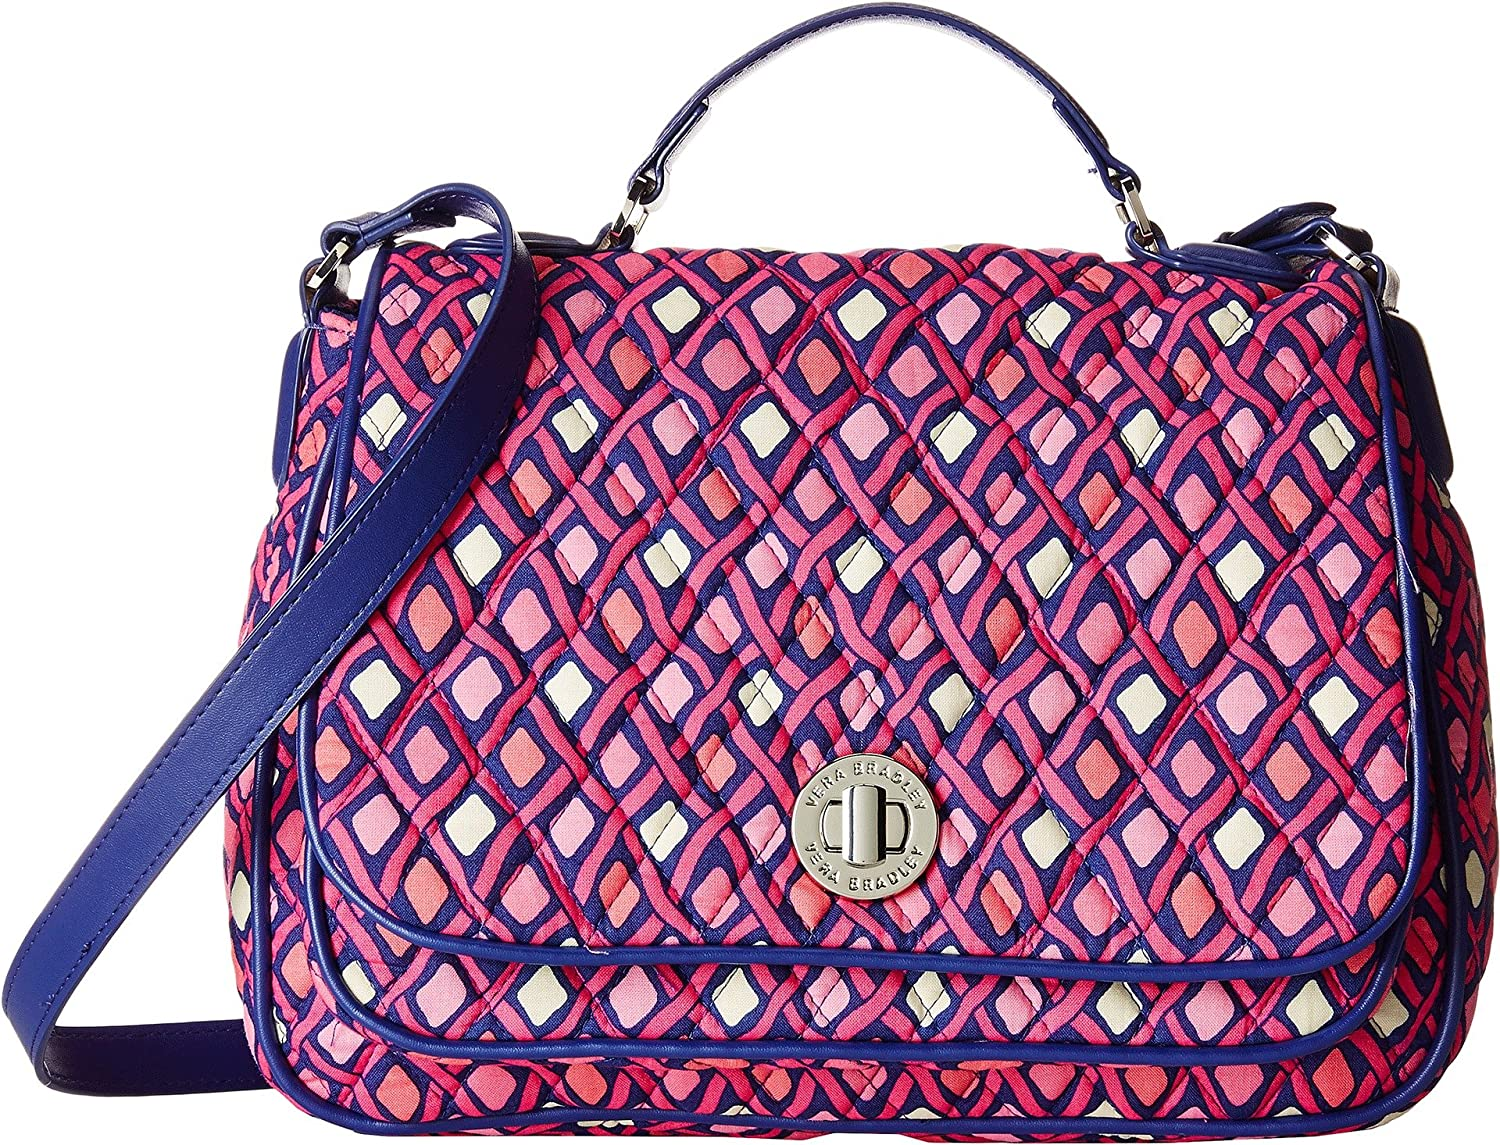 Vera Bradley Women's Turnlock Crossbody Katalina Pink Diamonds/Navy Crossbody Bag